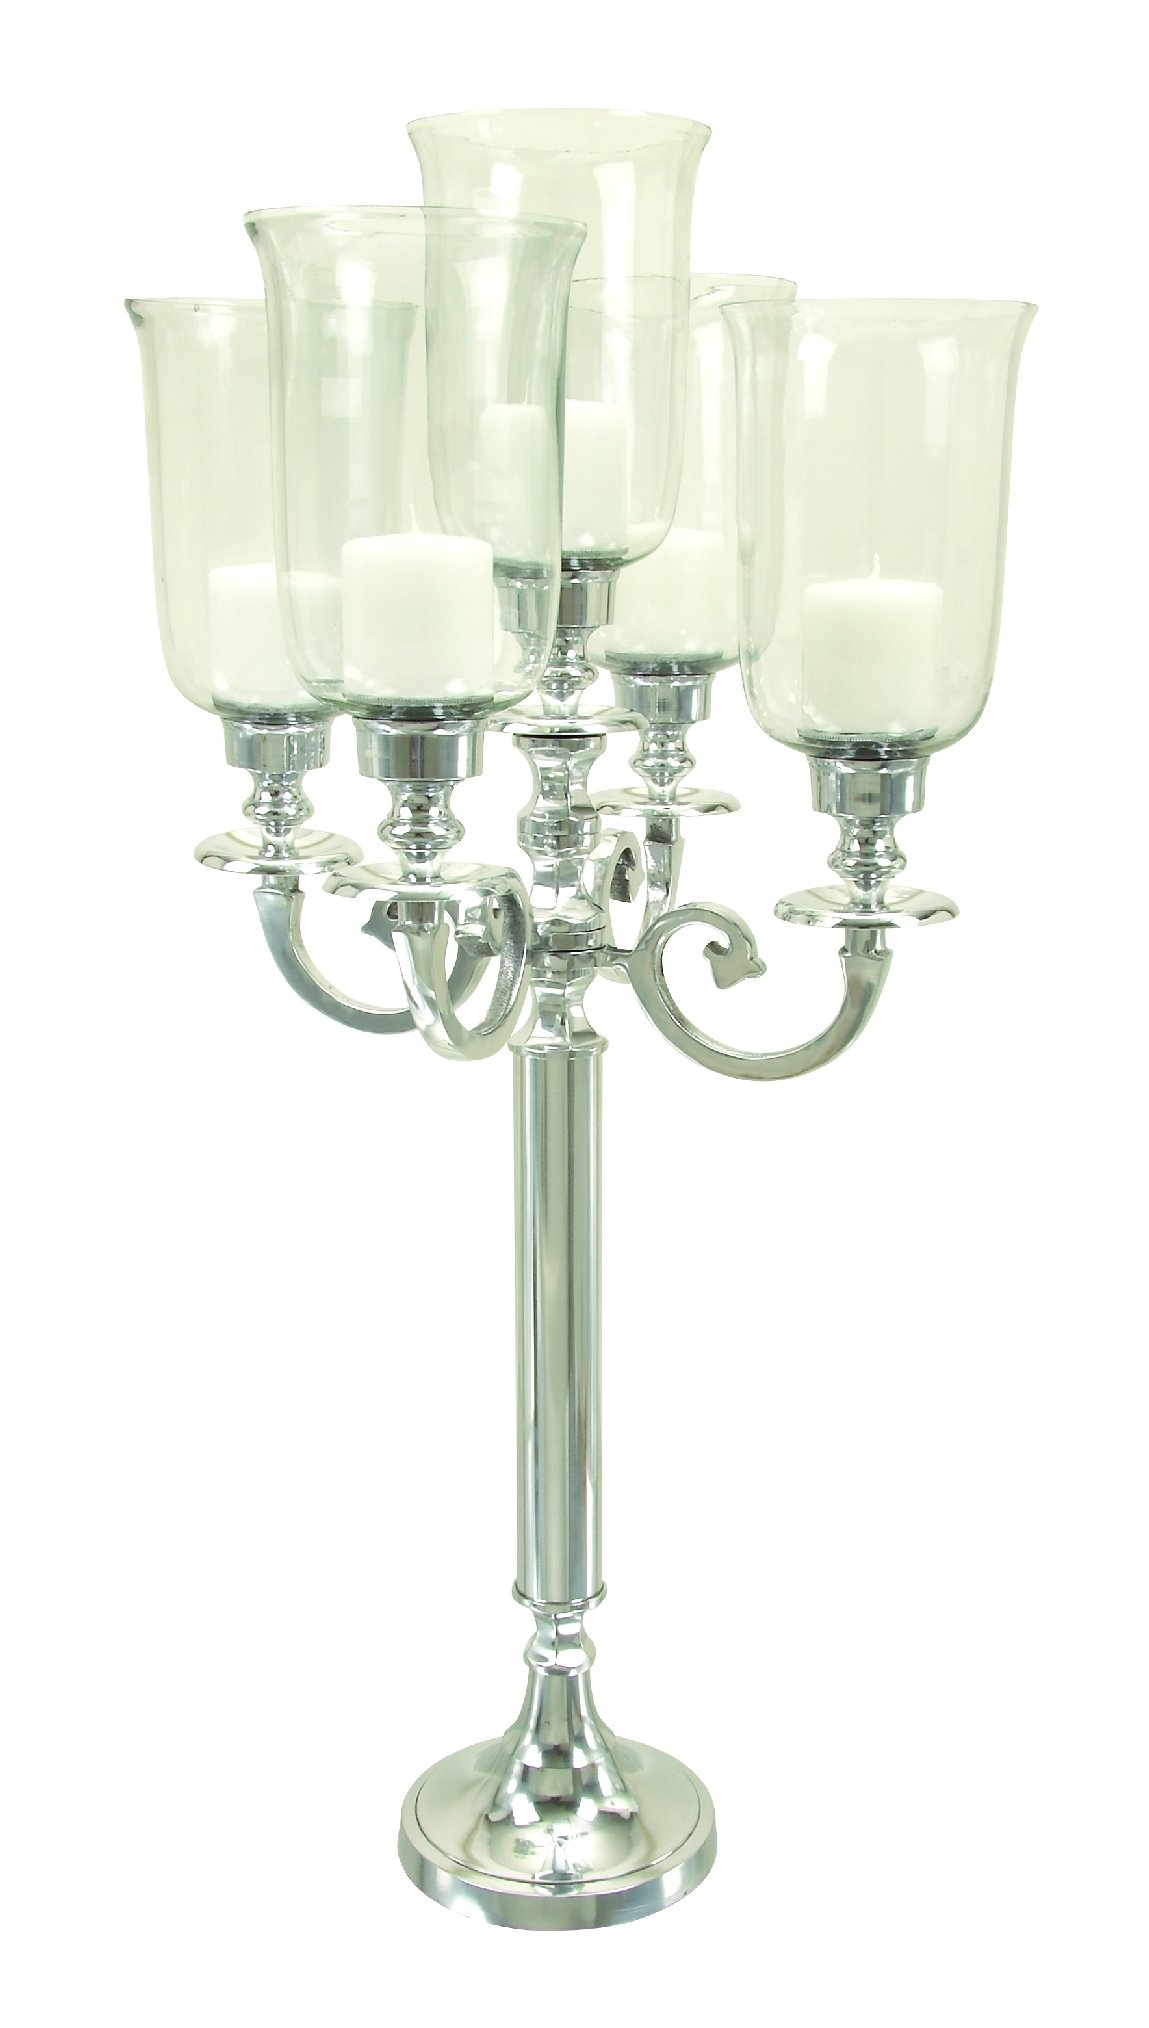 Deco 79 Aluminum Glass Candelabra, 39 by 17-Inch